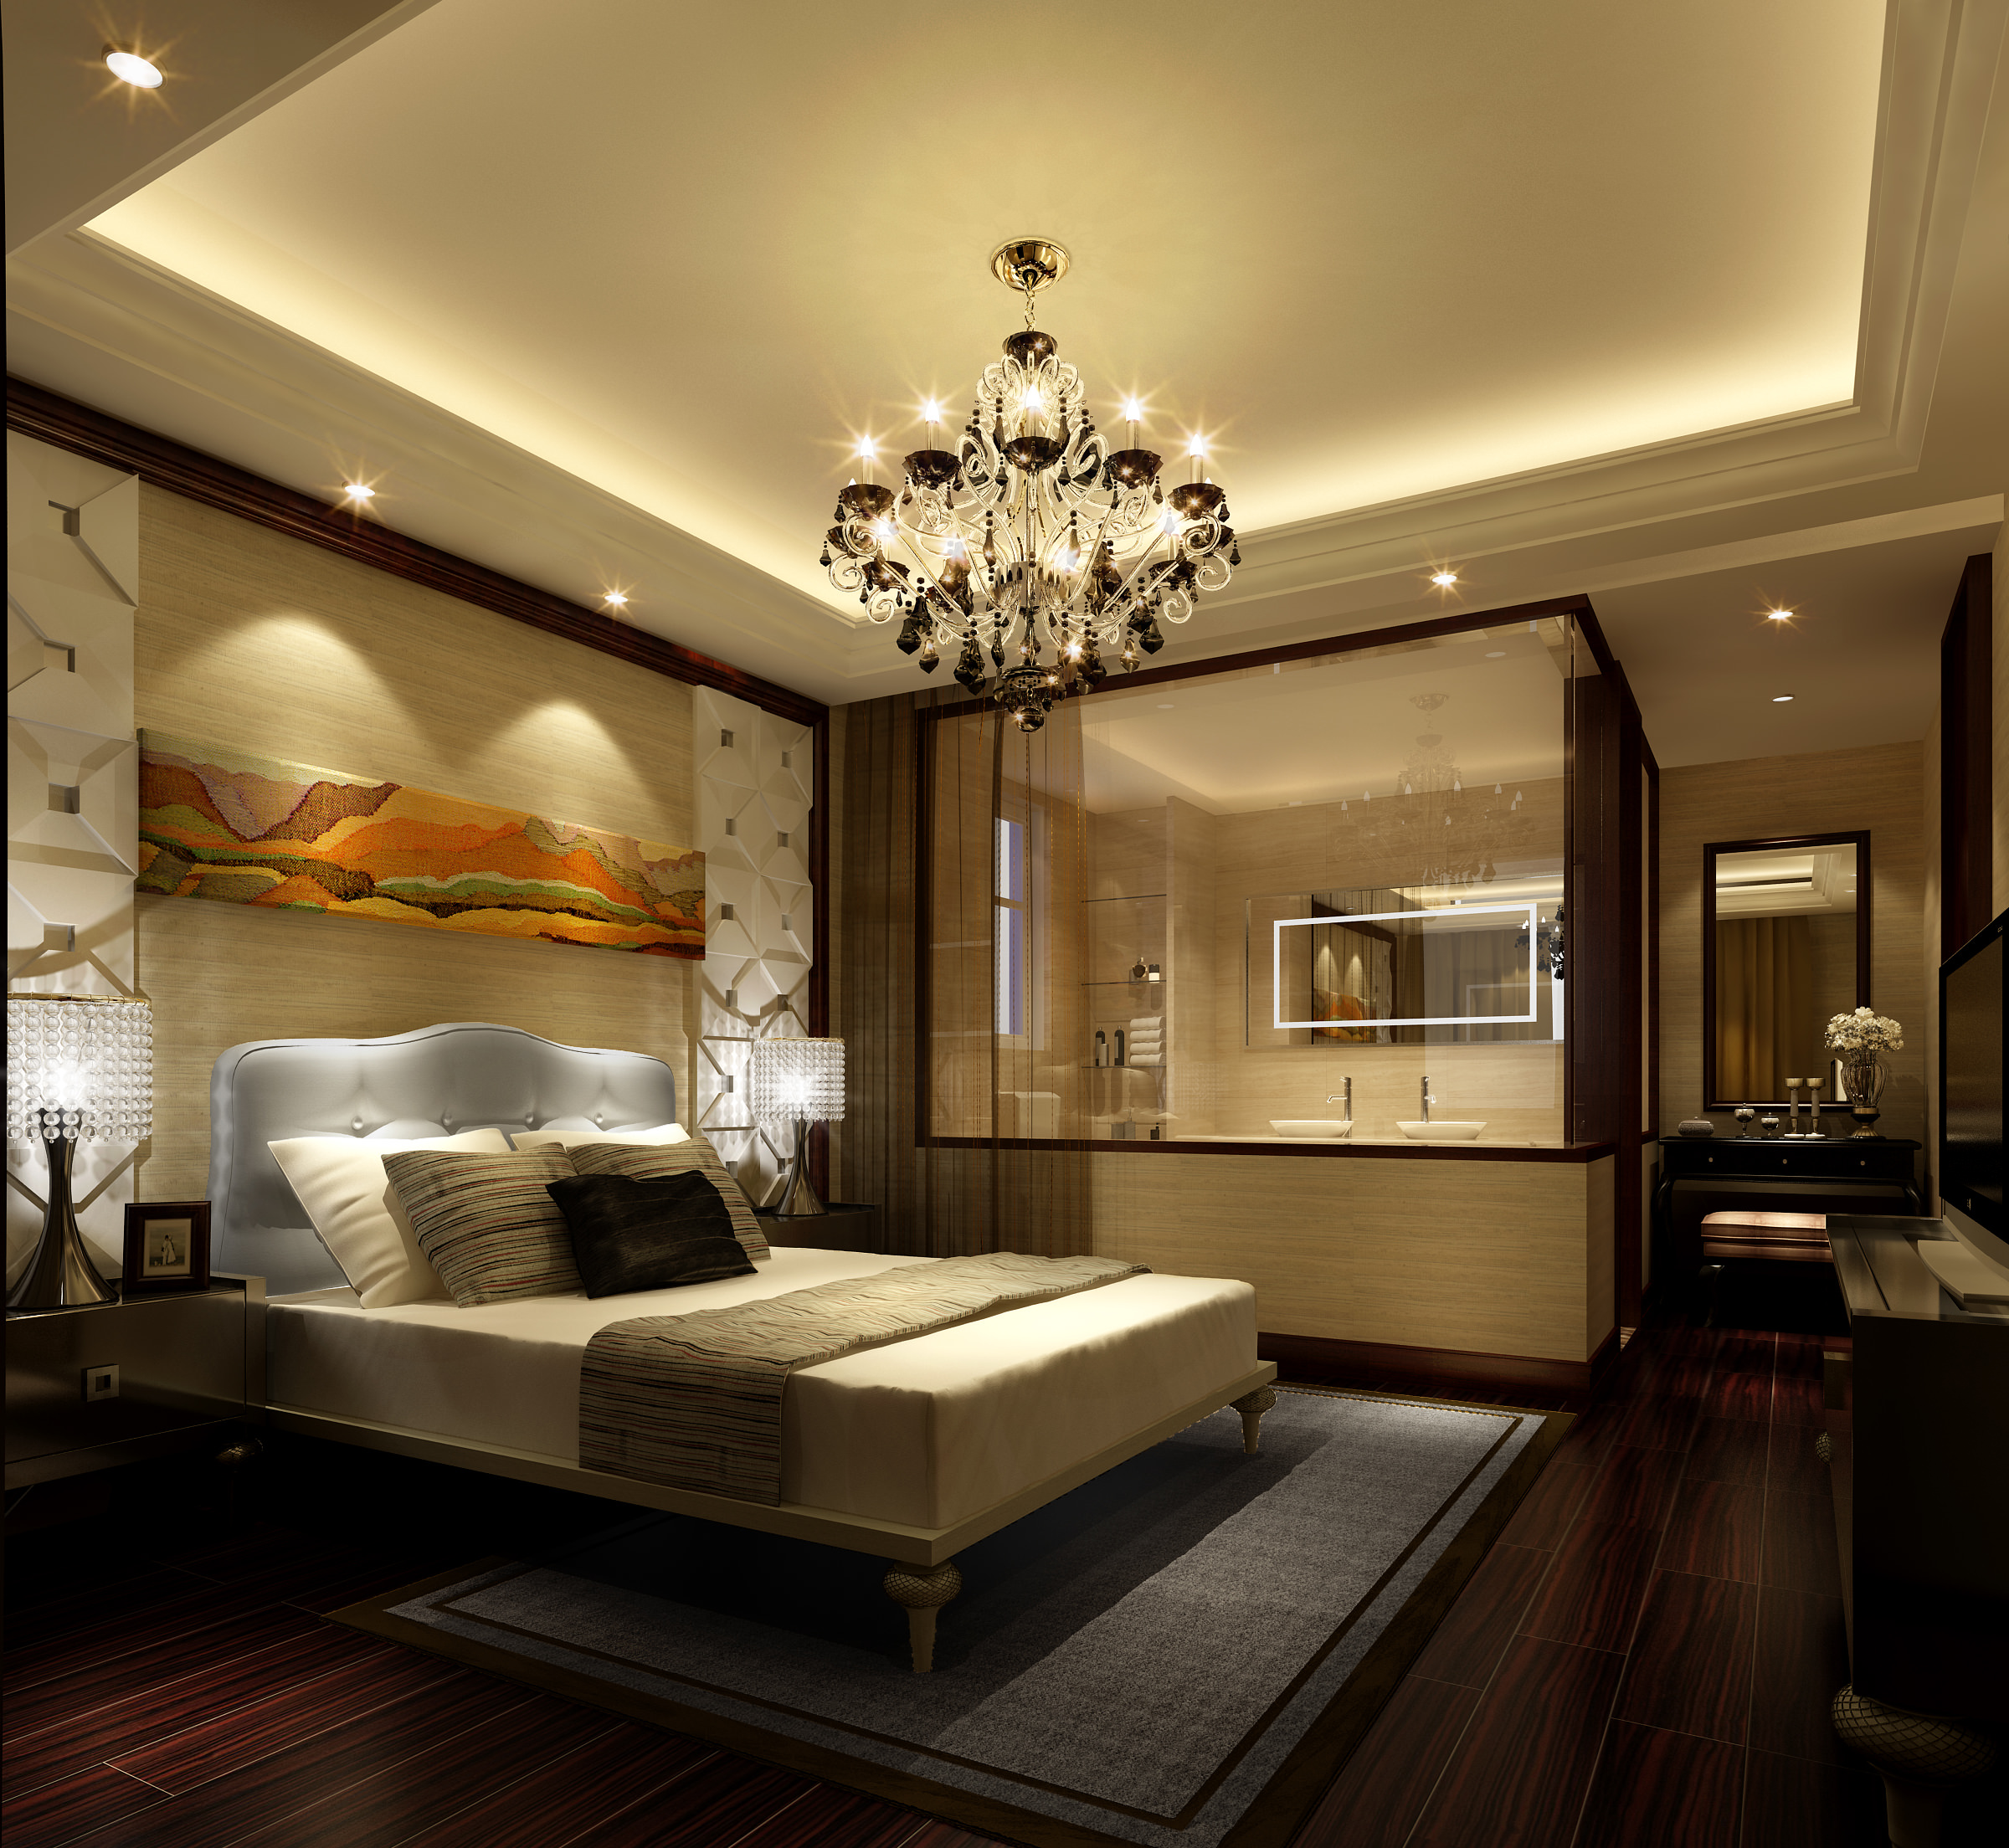 Model Bedroom Brilliant 3D Bedroom With Bathroom Luxury  Cgtrader Review